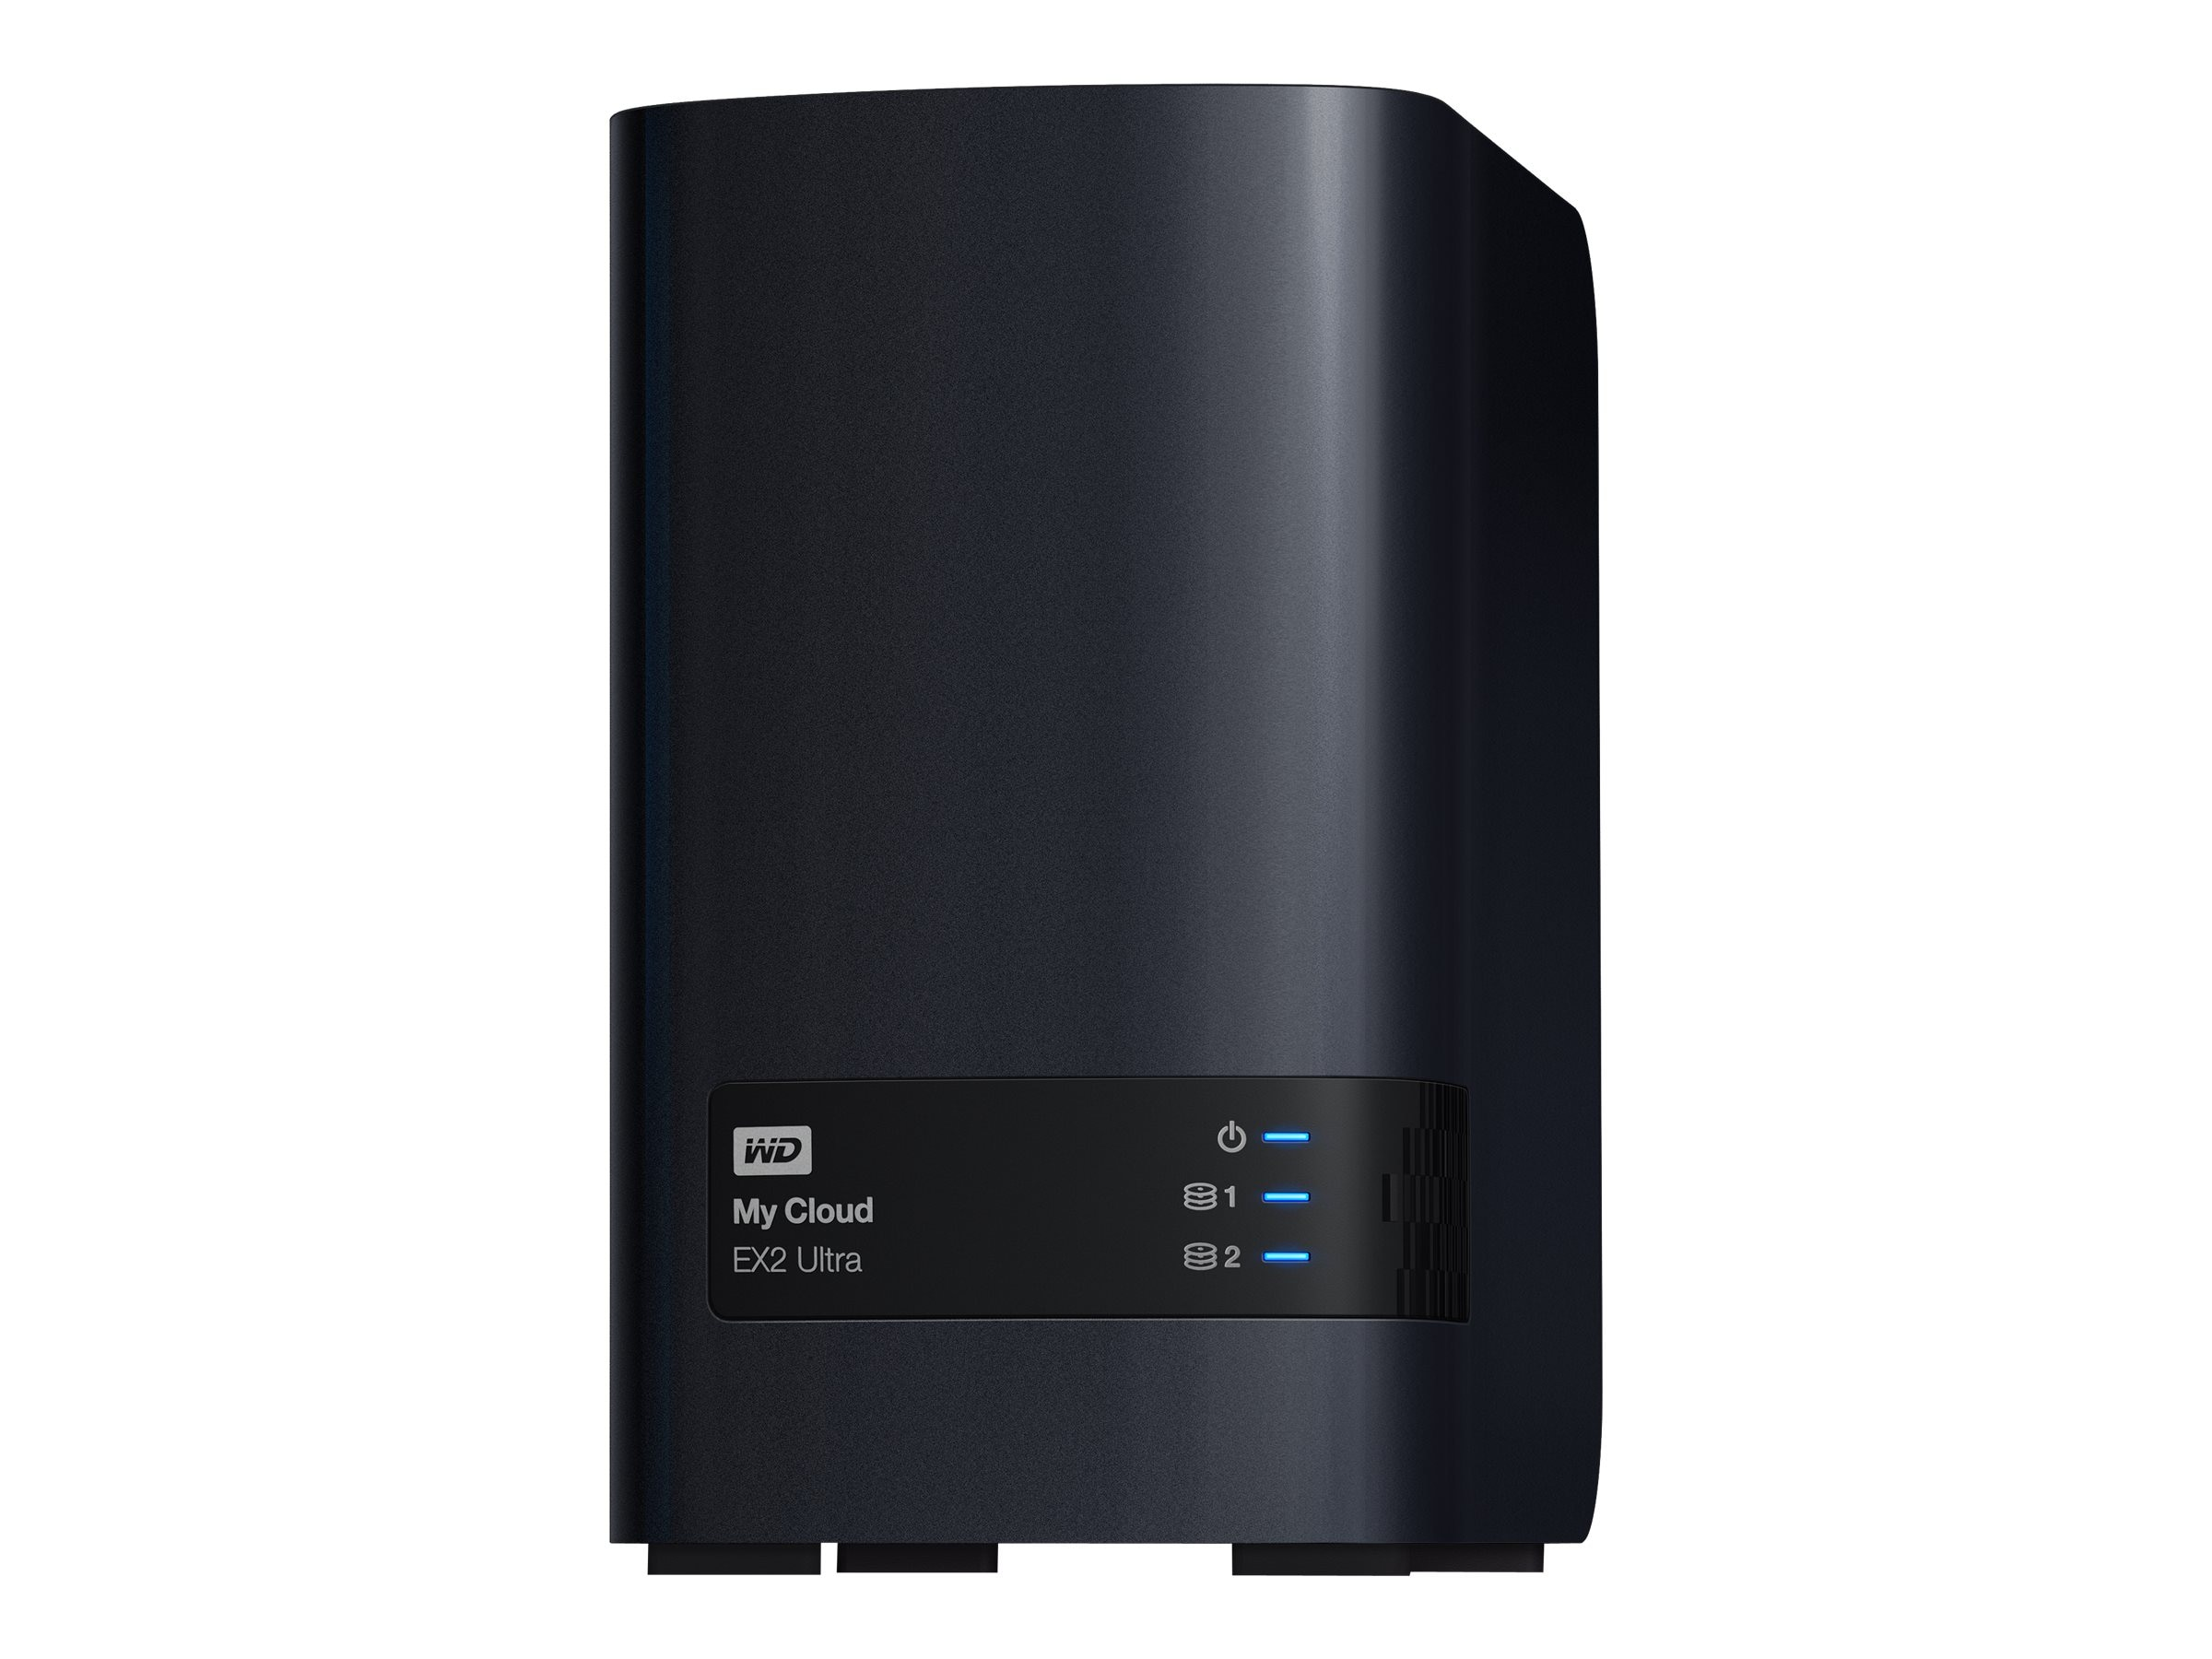 WD 16TB WD My Cloud EX2 Ultra Private Cloud NAS Storage, WDBVBZ0160JCH-NESN, 31866641, Network Attached Storage